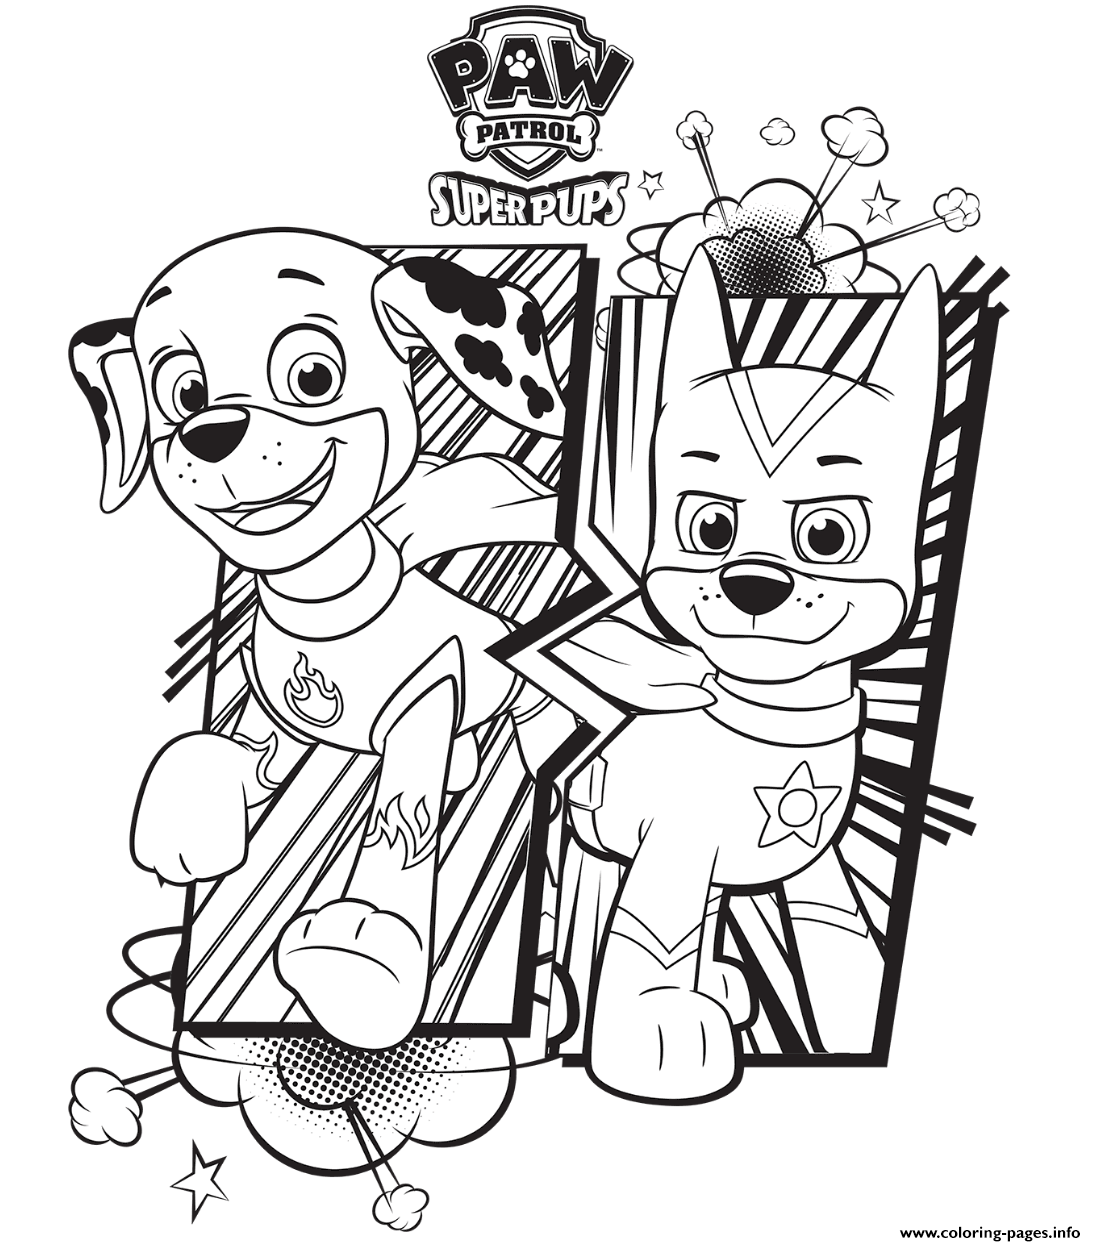 graphic regarding Free Printable Paw Patrol Coloring Pages called Free of charge Printable PAW Patrol Coloring Web pages are entertaining for youngsters of